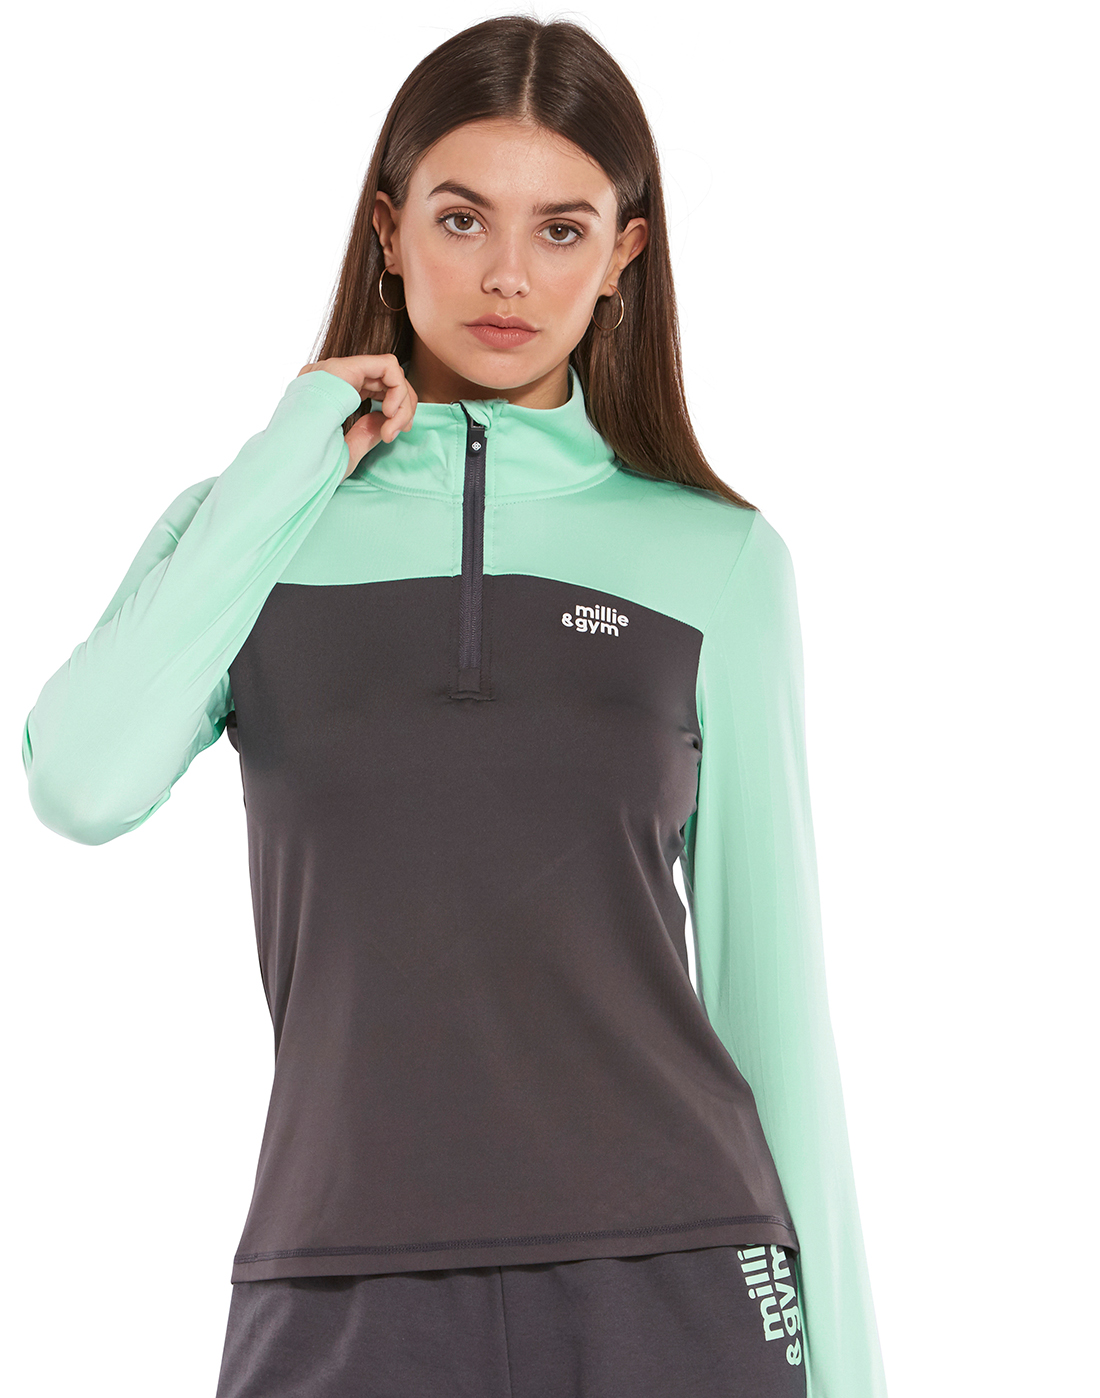 cfe43291d Mint Green Millie & Gym Half Zip Top | Life Style Sports